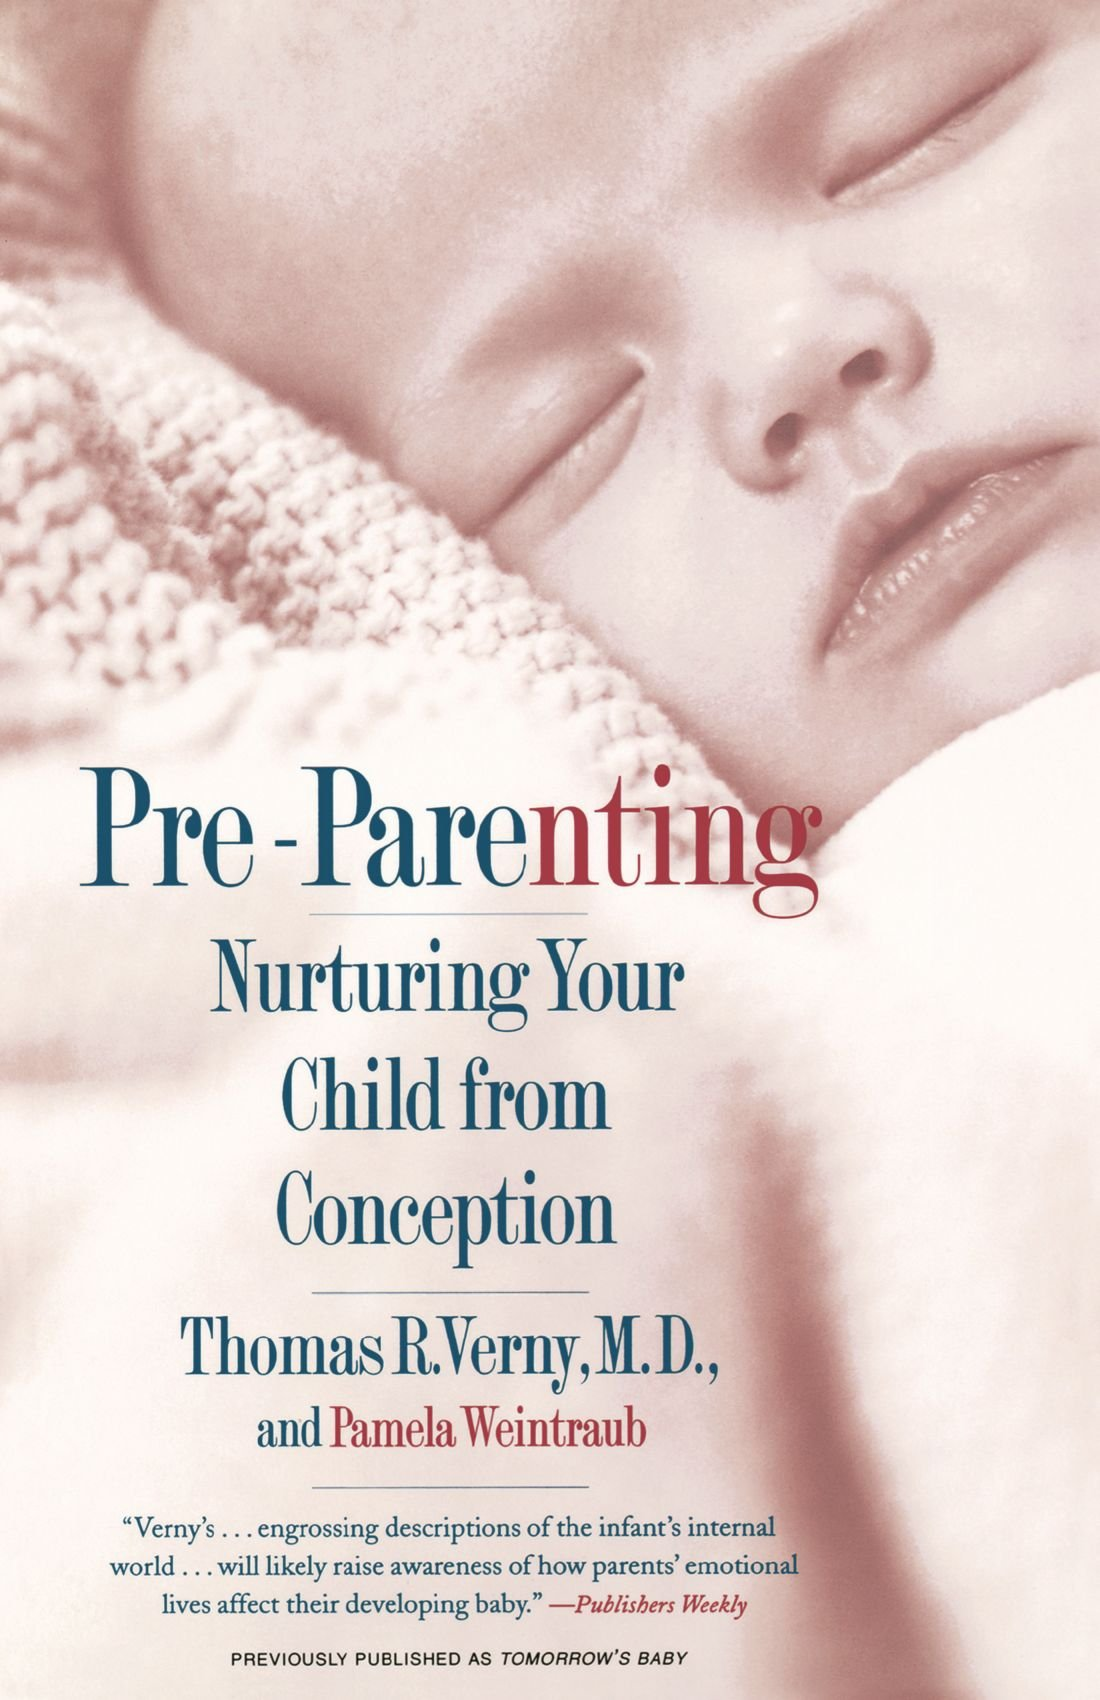 "pre-parenting : nurturing your child from conception - By Thomas R. VernyHow does a mother's tone of voice affect her unborn child? What kind of music, if any, should a child be exposed to in the womb? Can parents influence the predispositions of their child to traits like depression, or something as elusive as basic goodness? Thanks to revolutionary discoveries in neuroscience and developmental psychology in recent years, says Dr. Thomas Verny, we now know more about these questions than ever. In Pre-Parenting, Dr. Verny translates this research into practical advice for parents and parents-to-be.Pre-Parenting explains how even the most ordinary events can evoke a cascade of biological changes in a baby — not only in the brain but also in the immune system and throughout the body. Every experience, from a baby's trip down the birth canal to the way she is held or spoken to, can shape her health and personality. An internationally recognized expert in early human development, Dr. Verny shows parents how to use this new information to create an ideal environment for their babies, enhance their babies' intelligence and social skills, and become better parents through ""conscious parenting."" Insightful and encouraging, Pre-Parenting is an invaluable guide for parents who want to help actualize their child's full potential, beginning with conception."